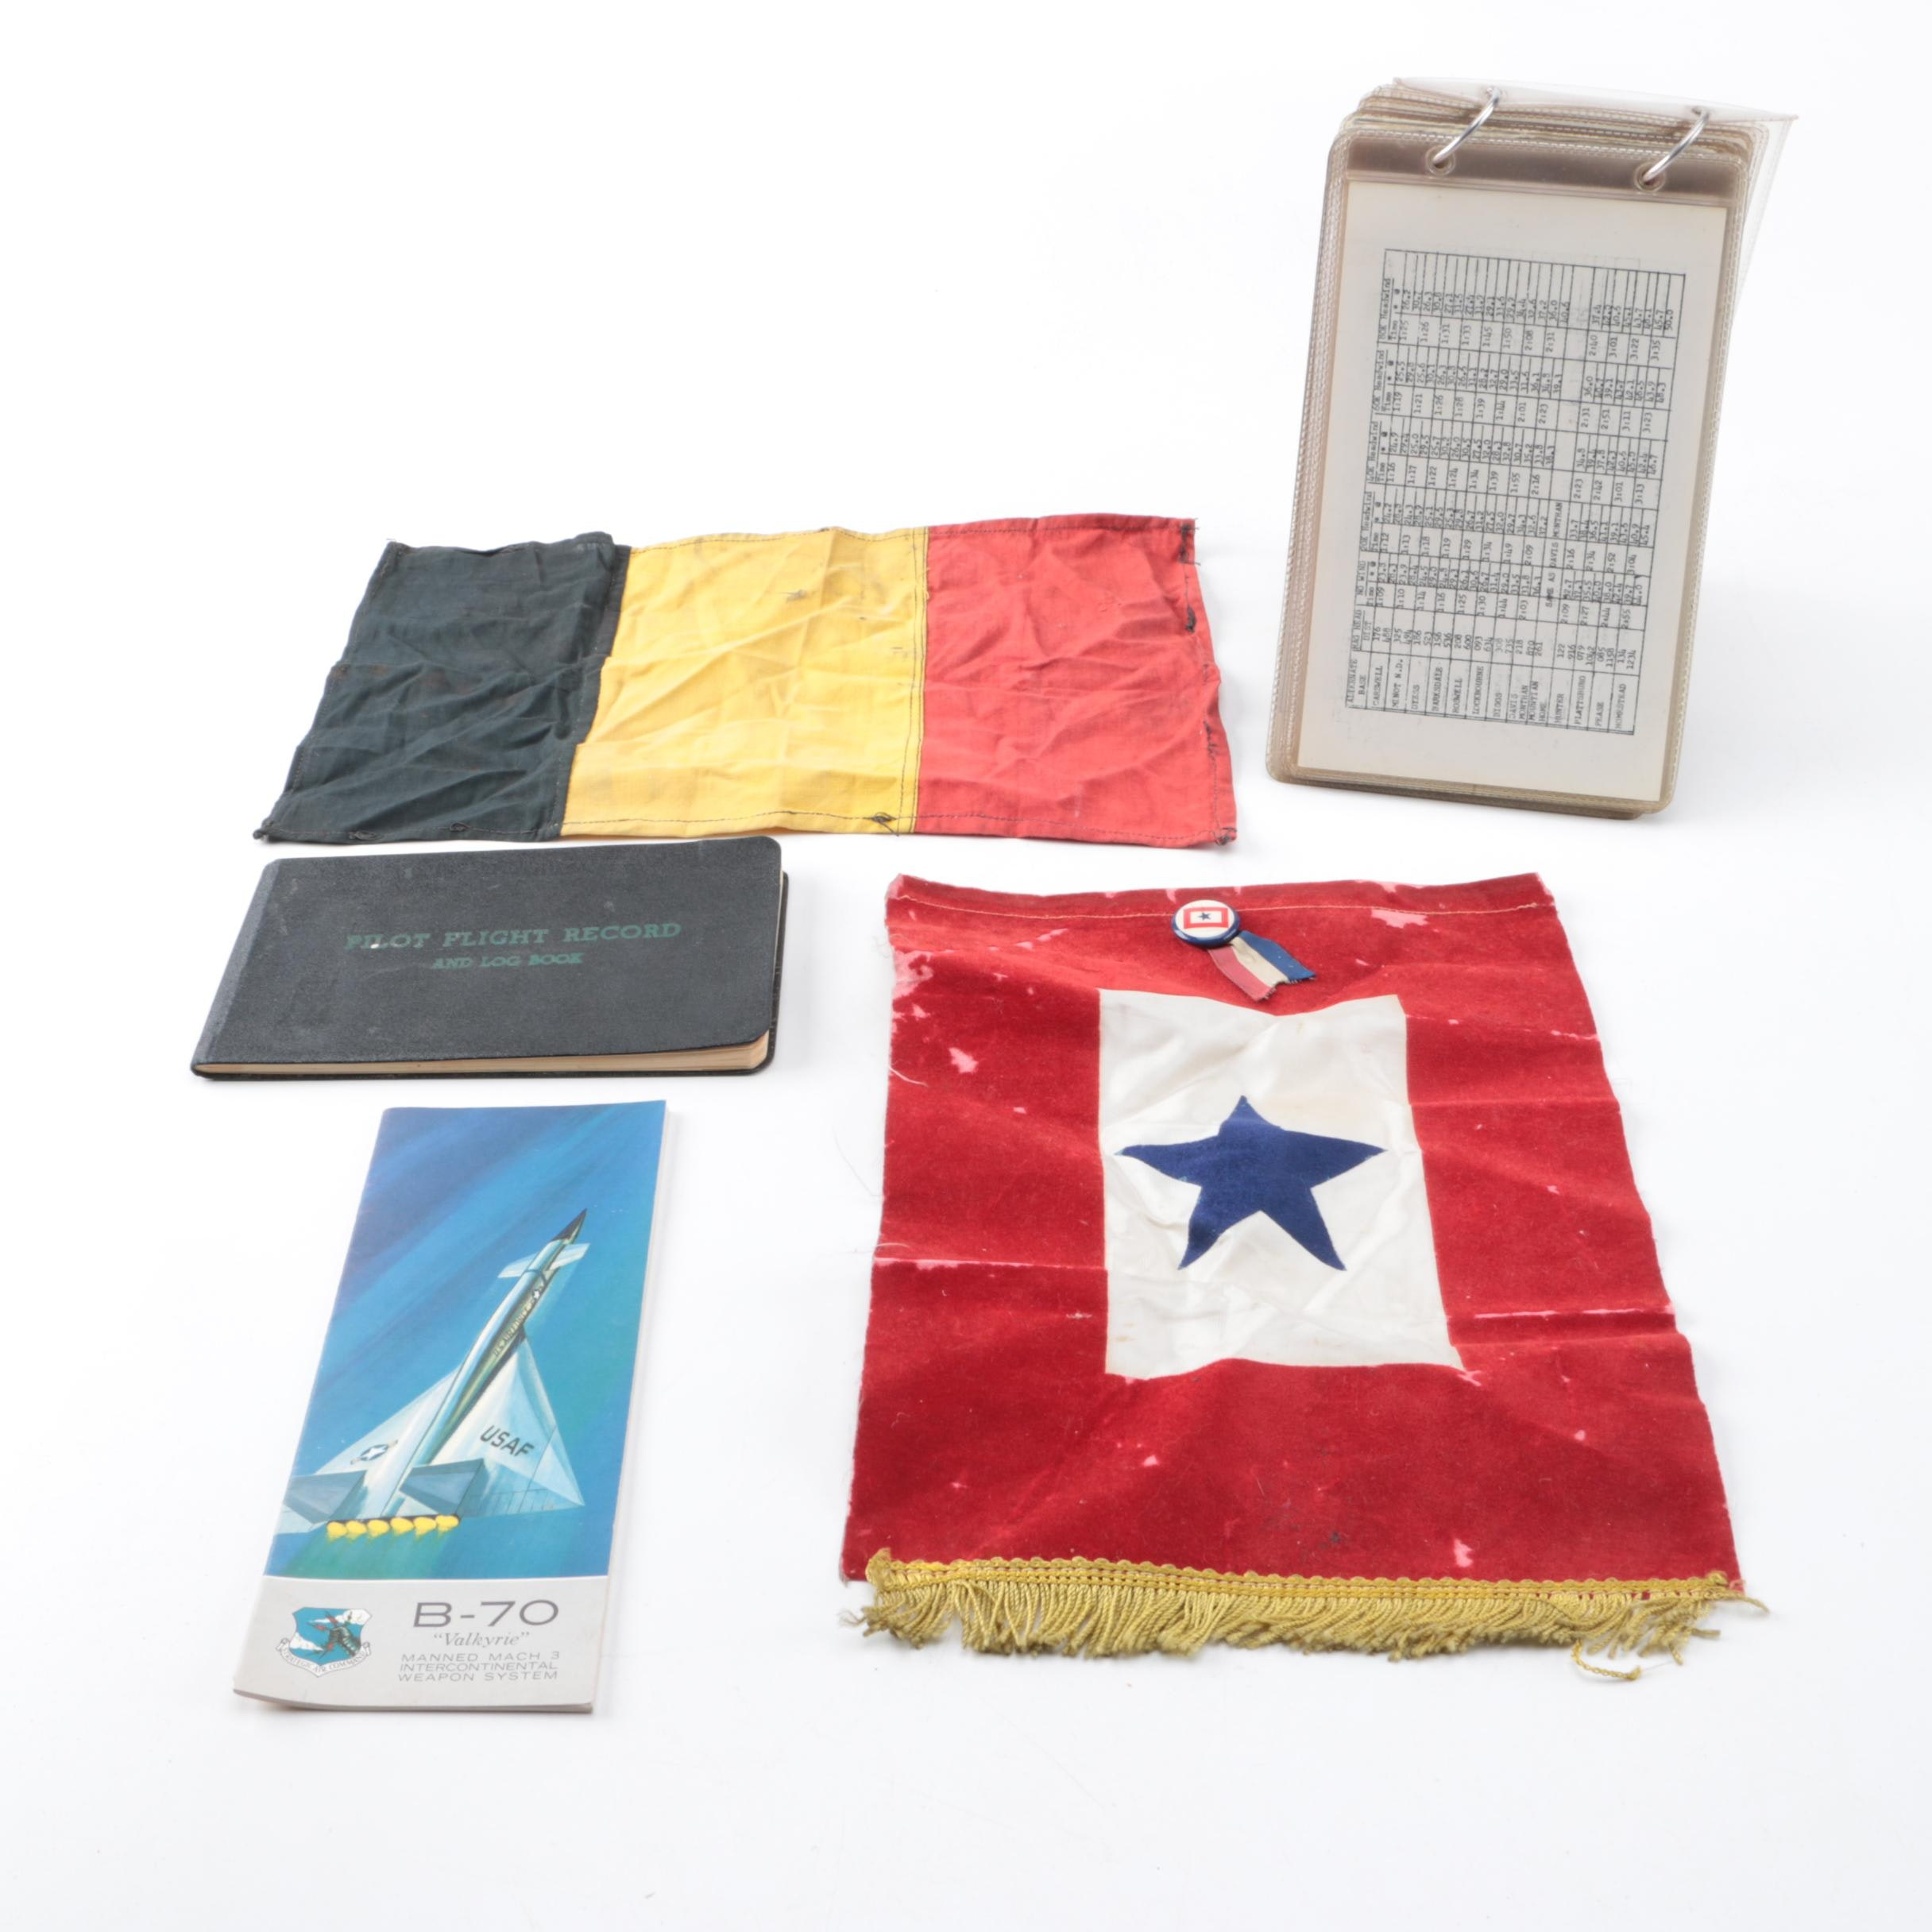 Vintage Pilot's Charts and Flight Log, with Blue Star Pillow Cover